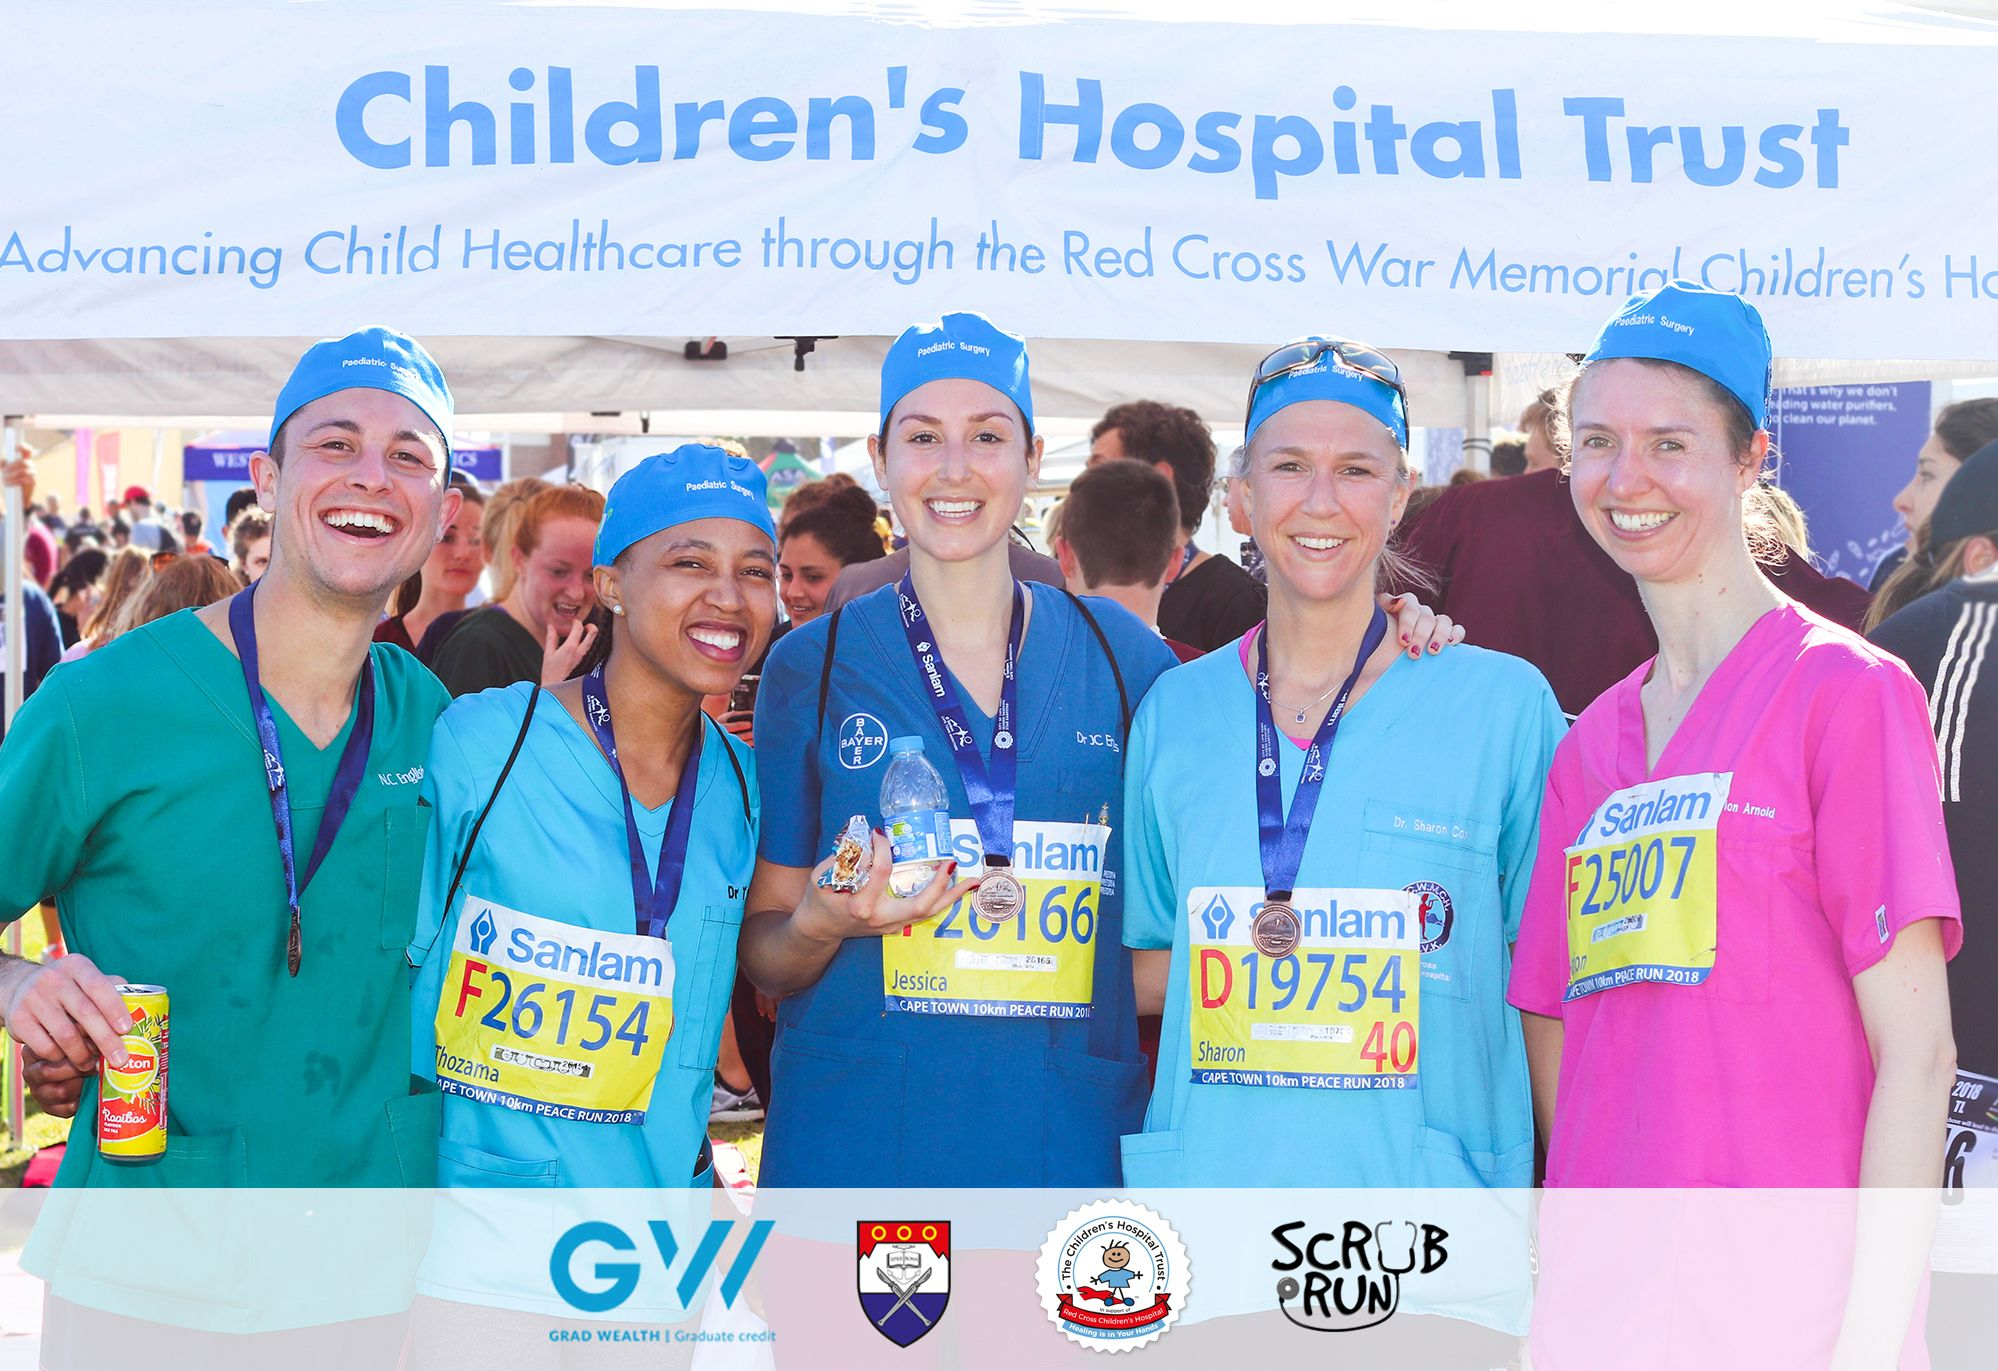 UCT Scrub Run Childrens Hospital Trust Donate today and ensure a better future